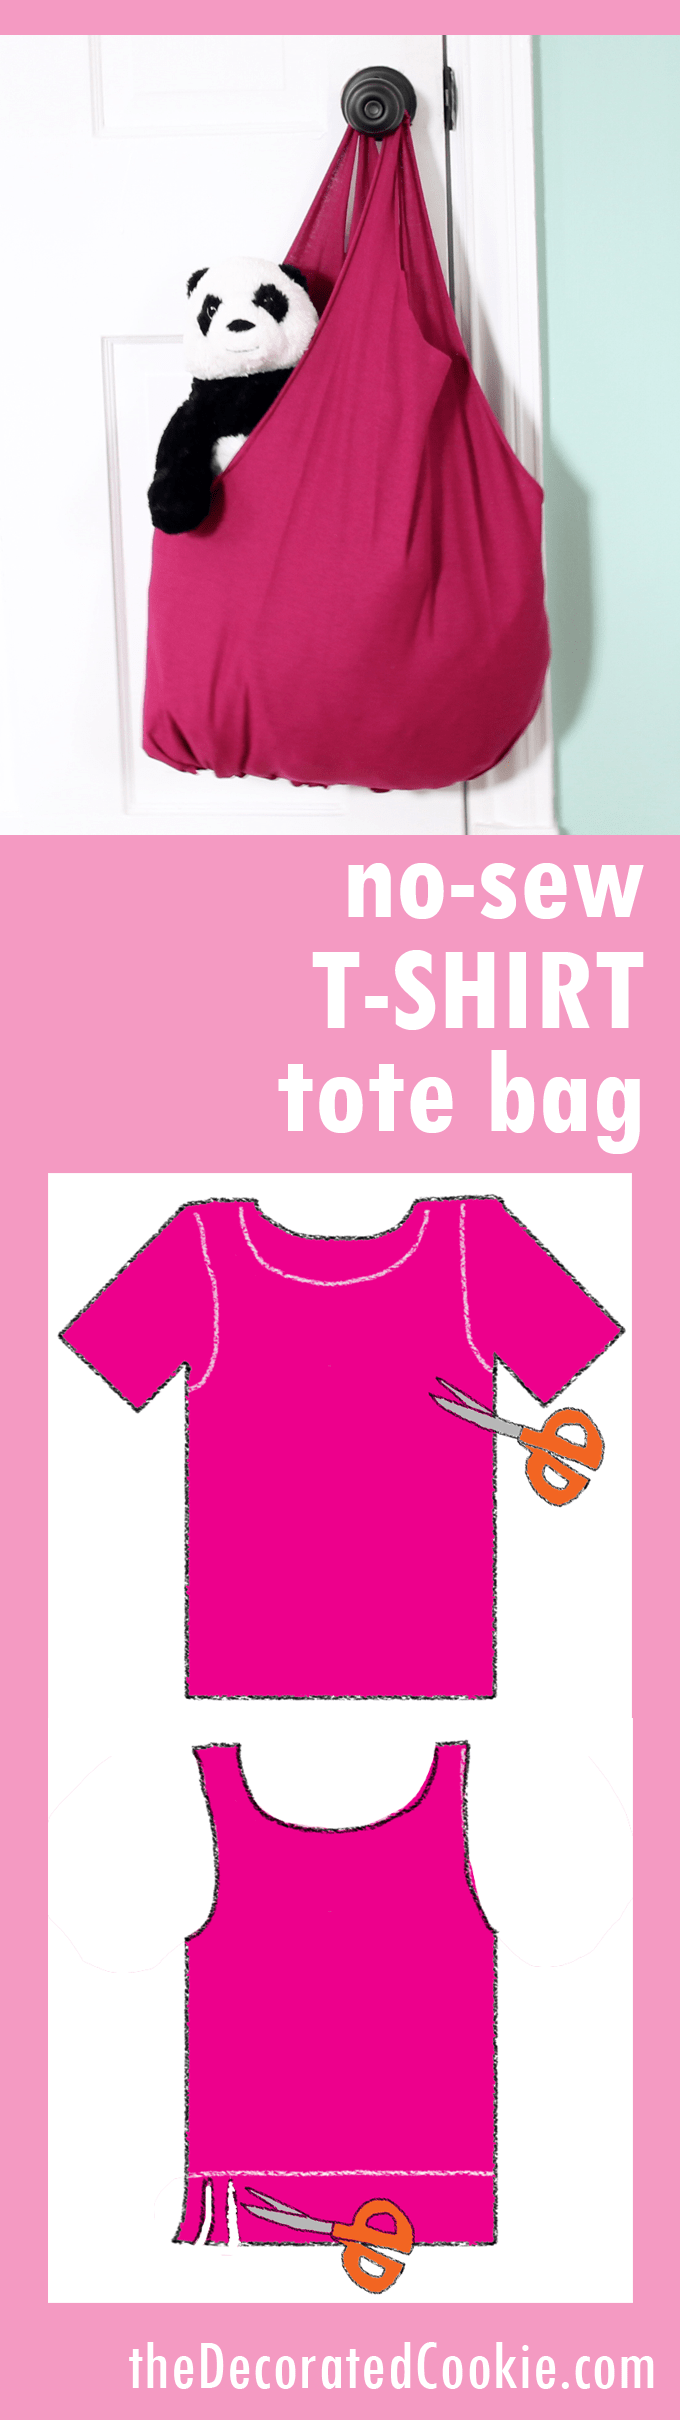 no-sew T-shirt tote bag